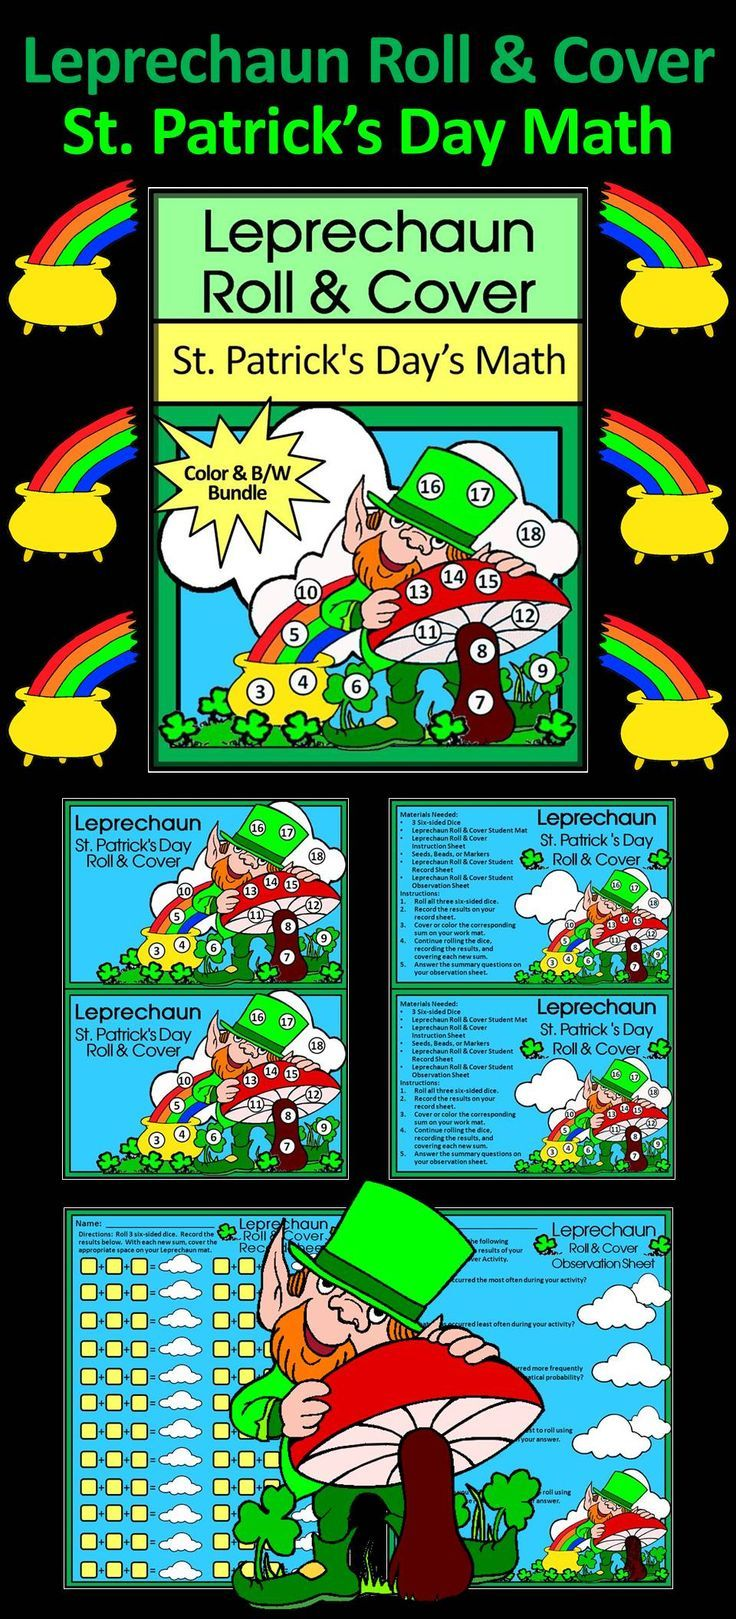 Leprechaun Roll & Cover St. Patrick's Day Math Center Activity: This Leprechaun St. Patrick's Day Roll & Cover math center activity packet gives your students a fun and festive way to practice addition in series in a hands-on way. Use 3 six-sided dice and seeds, beads, or other small items as counters.  Contents Include: * Student Work Mat * Instruction Set * Student Record Sheet * Student Observation Sheet  #St. #Patrick's #Day #Leprechaun #Math #Activities #Teacherspayteachers